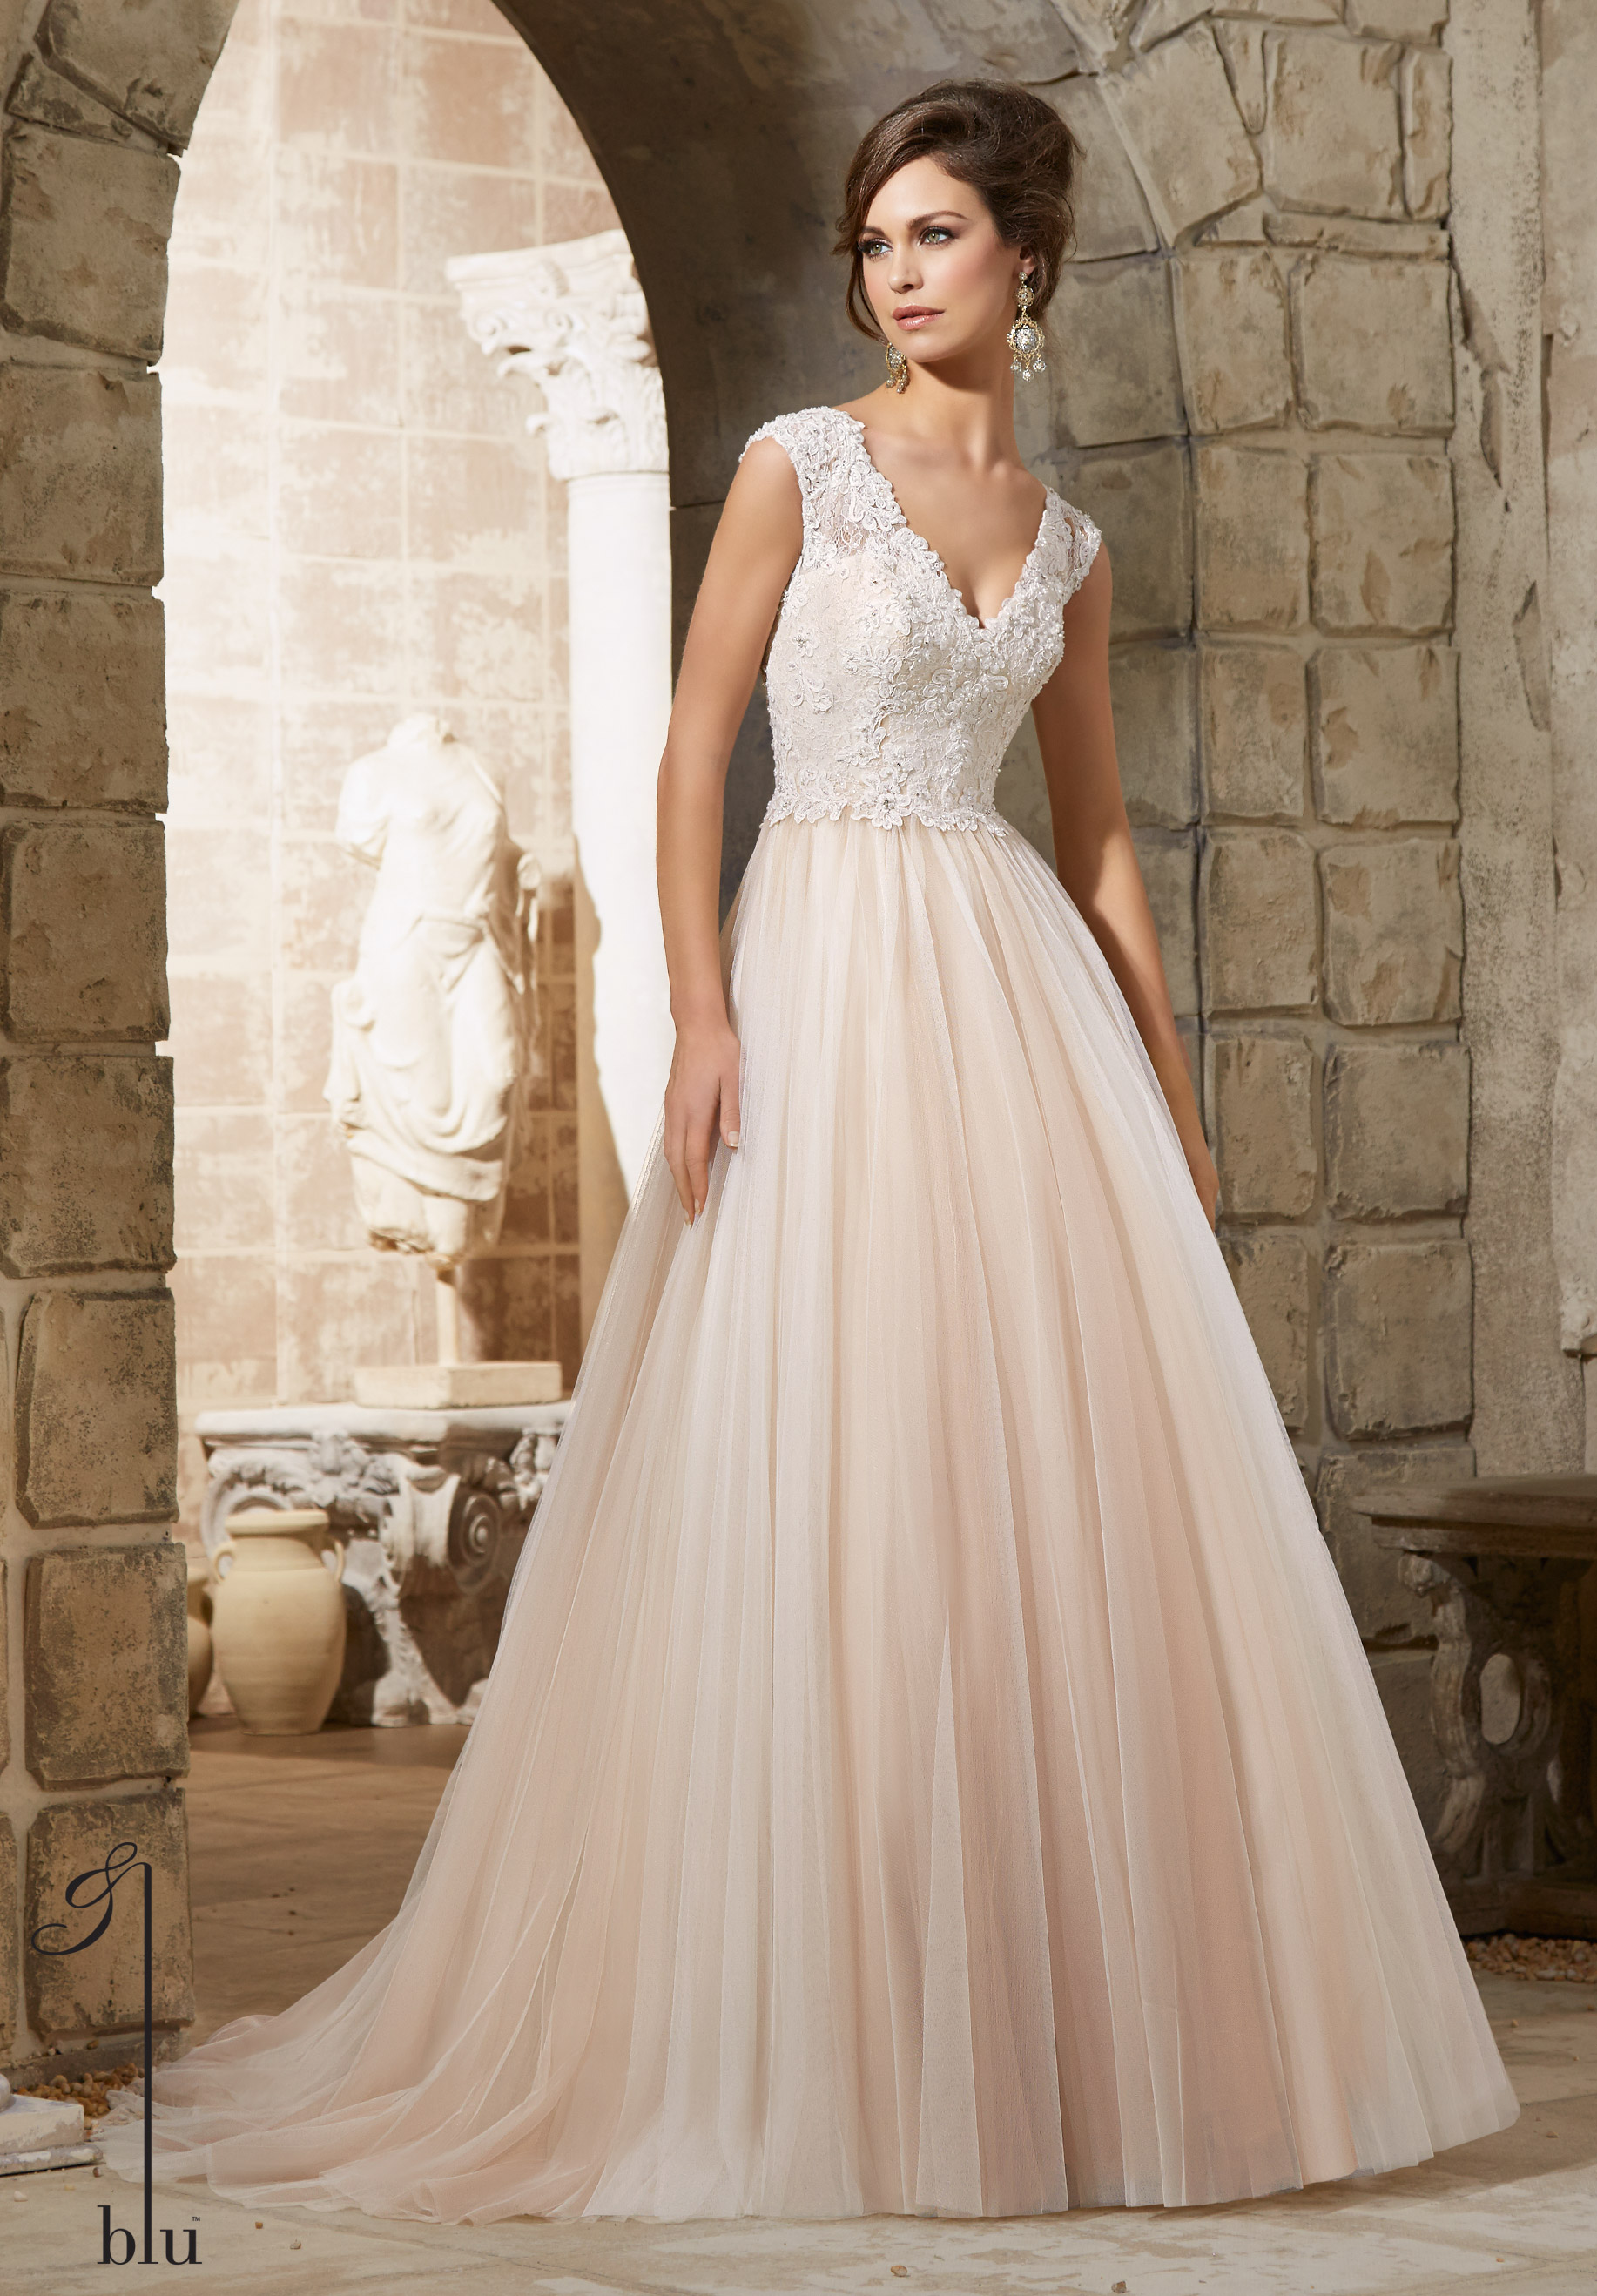 OUR FAVORITE WEDDING DRESS IS BACK!!!!!!!!! - Providence Place Bridal